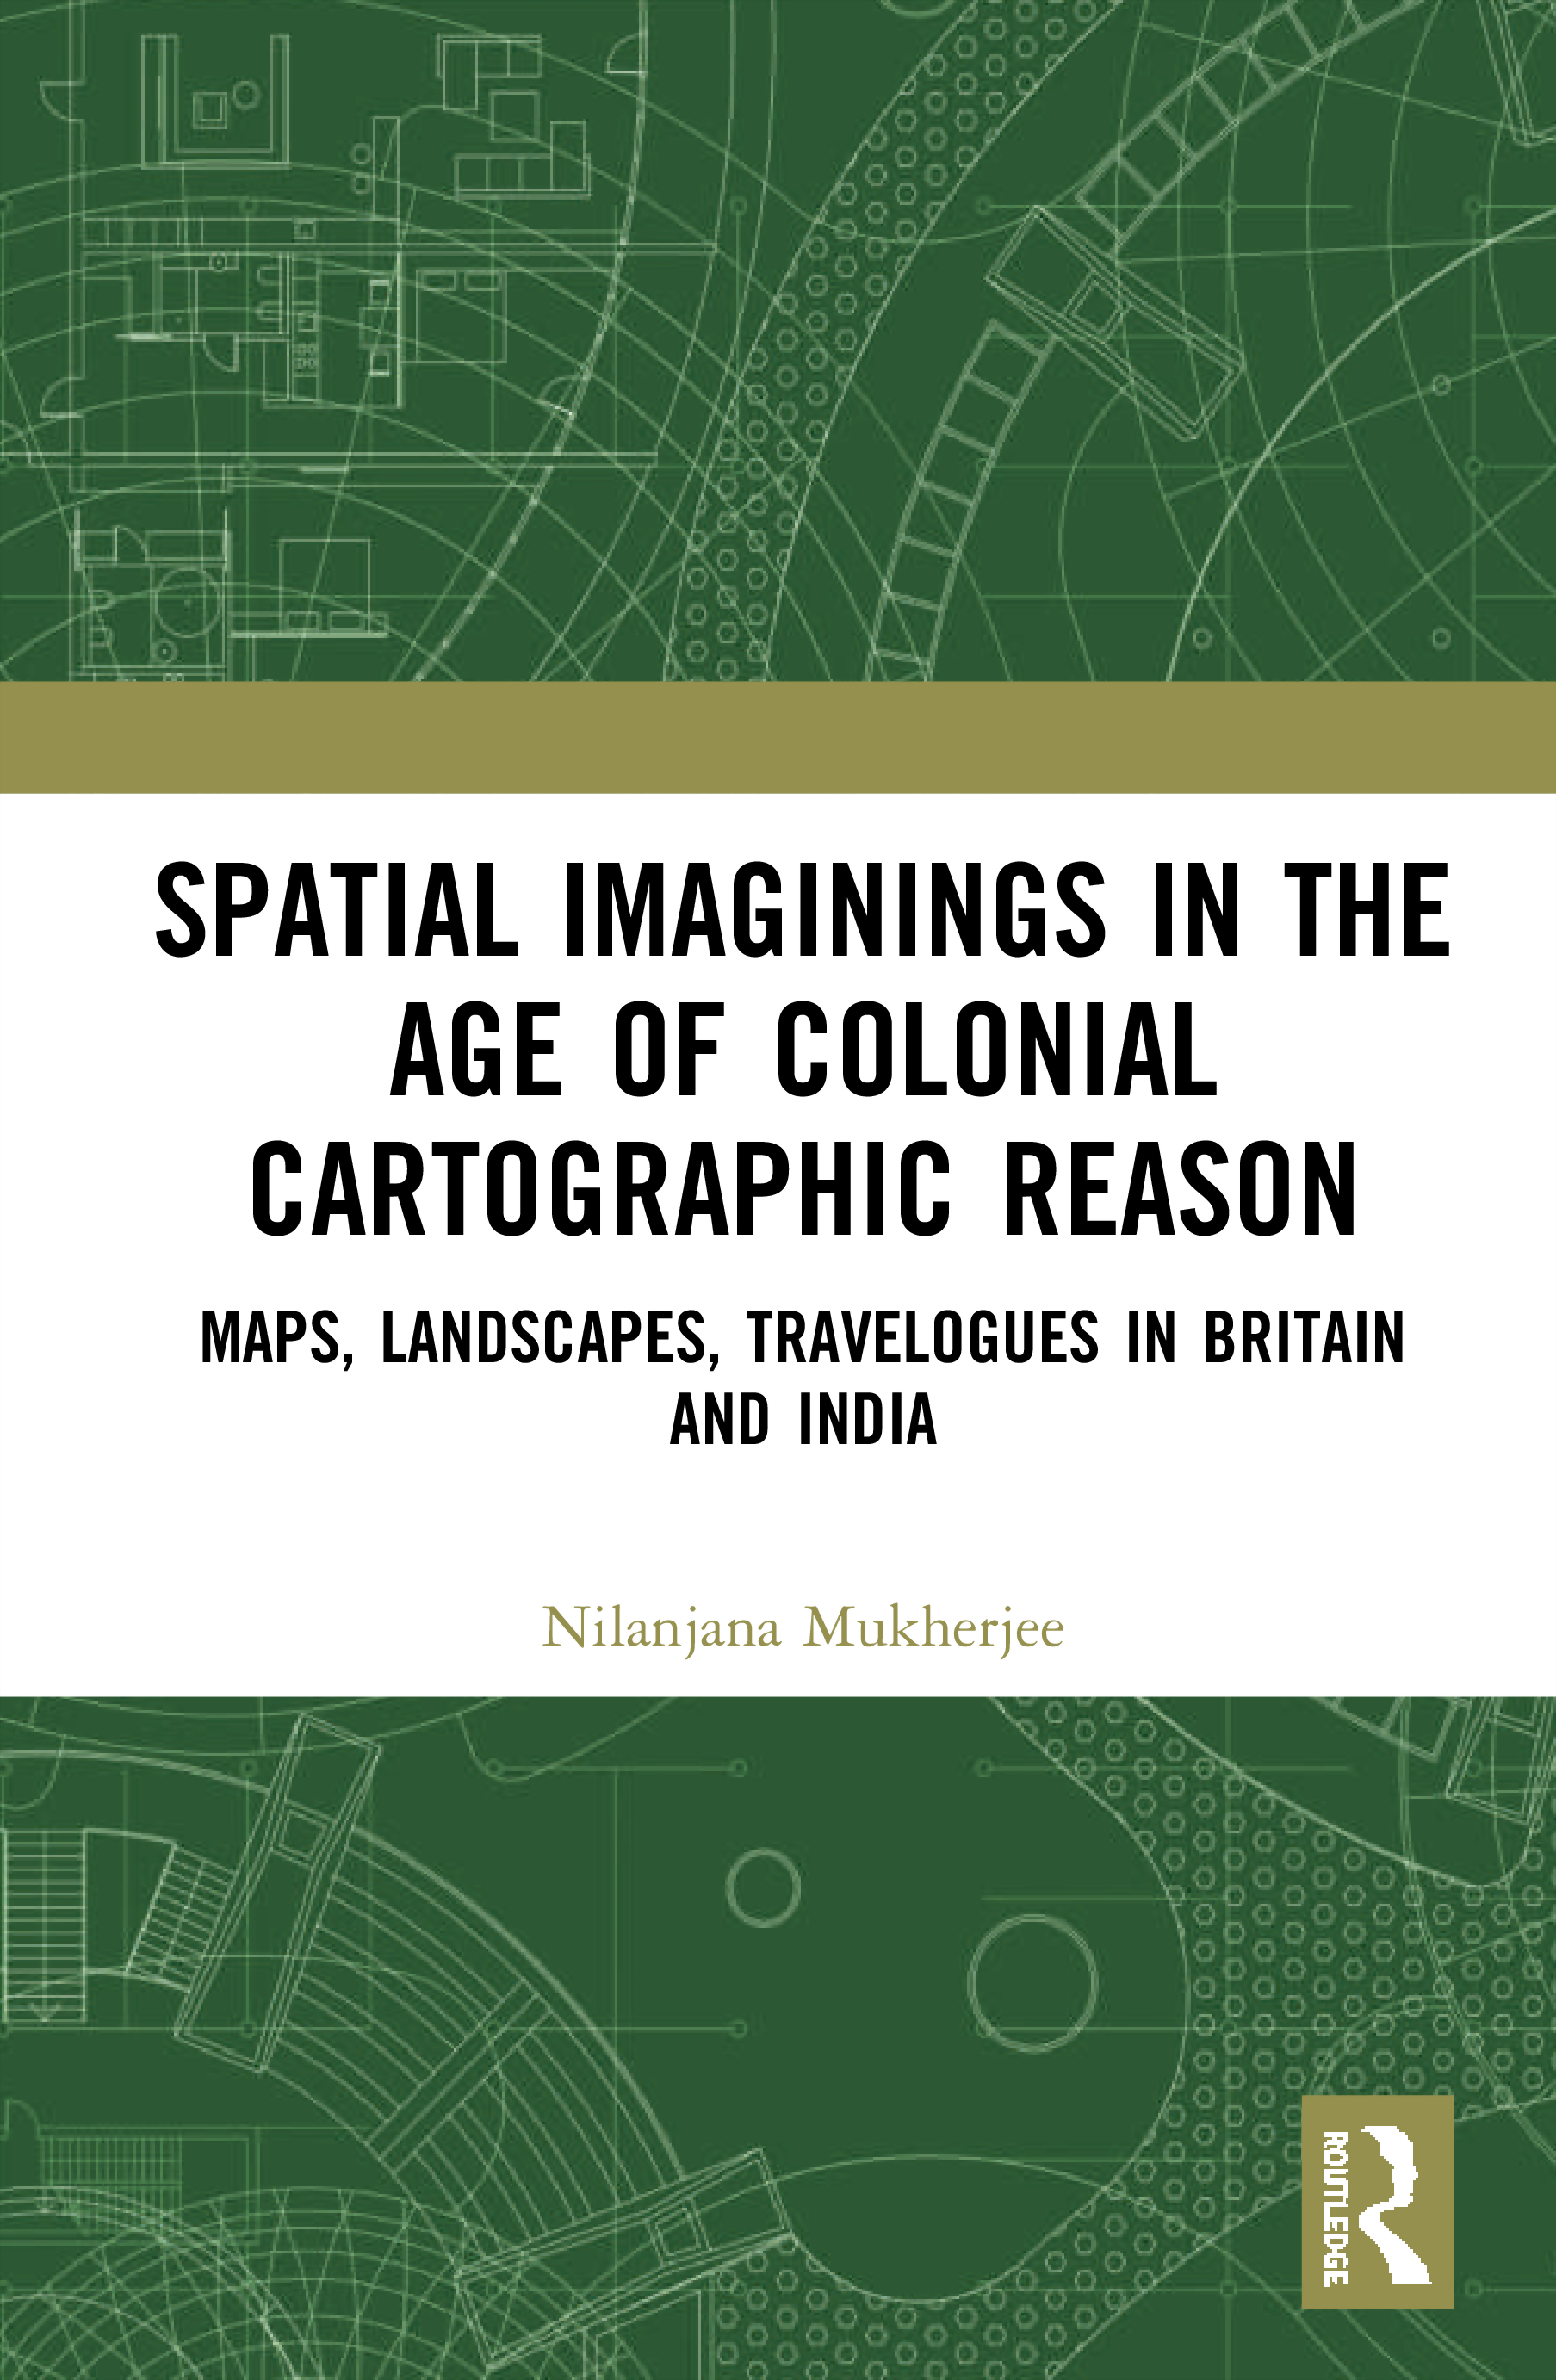 Spatial Imaginings in the Age of Colonial Cartographic Reason: Maps, Landscapes, Travelogues in Britain and India book cover